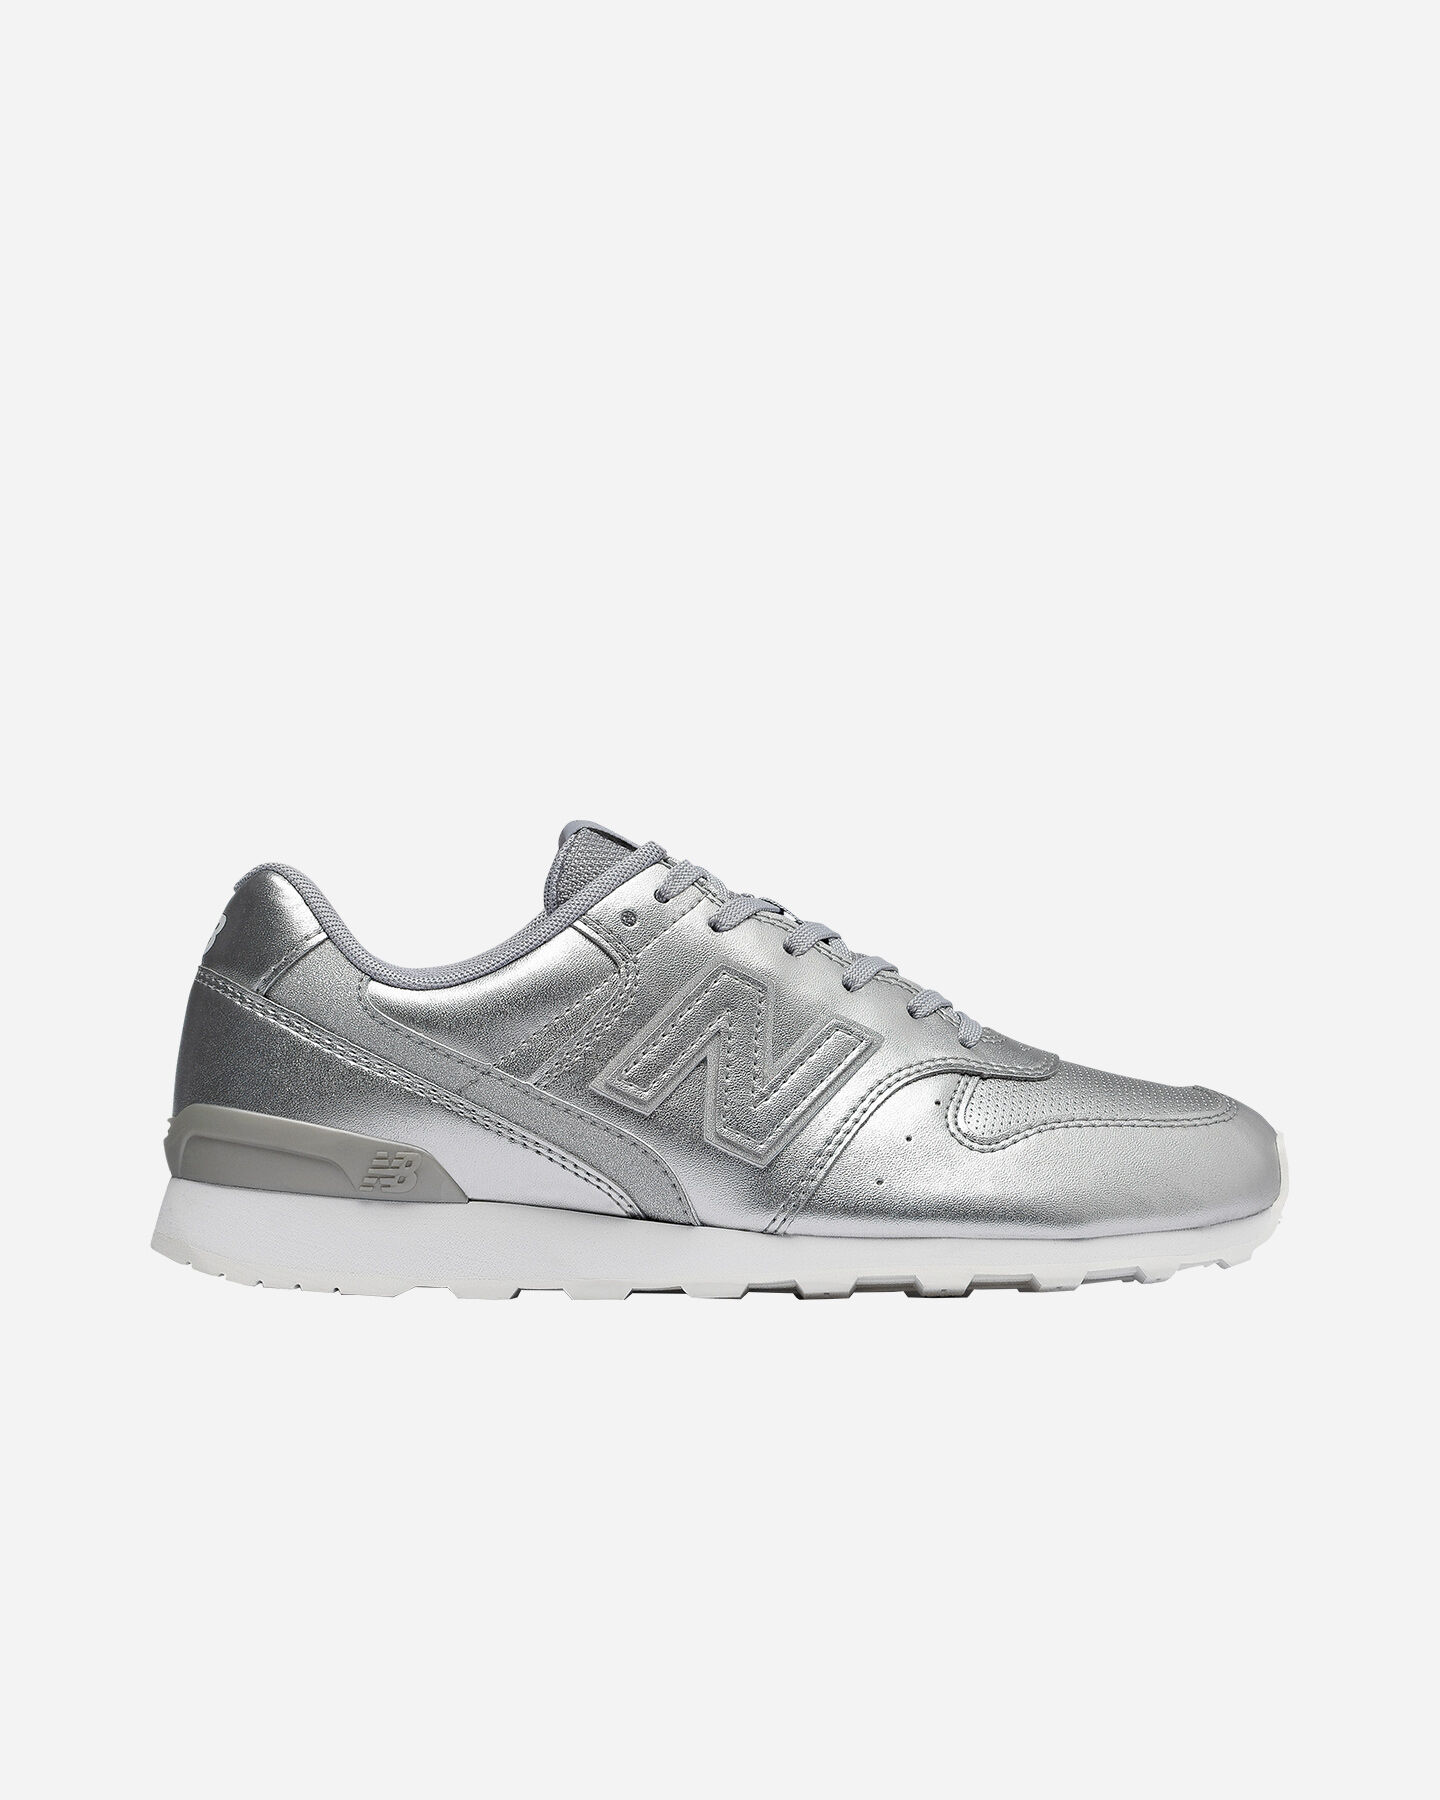 413477a5f1 NUOVE Scarpe Donna Ginnastica New Balance WR996SRS -  mainstreetblytheville.org